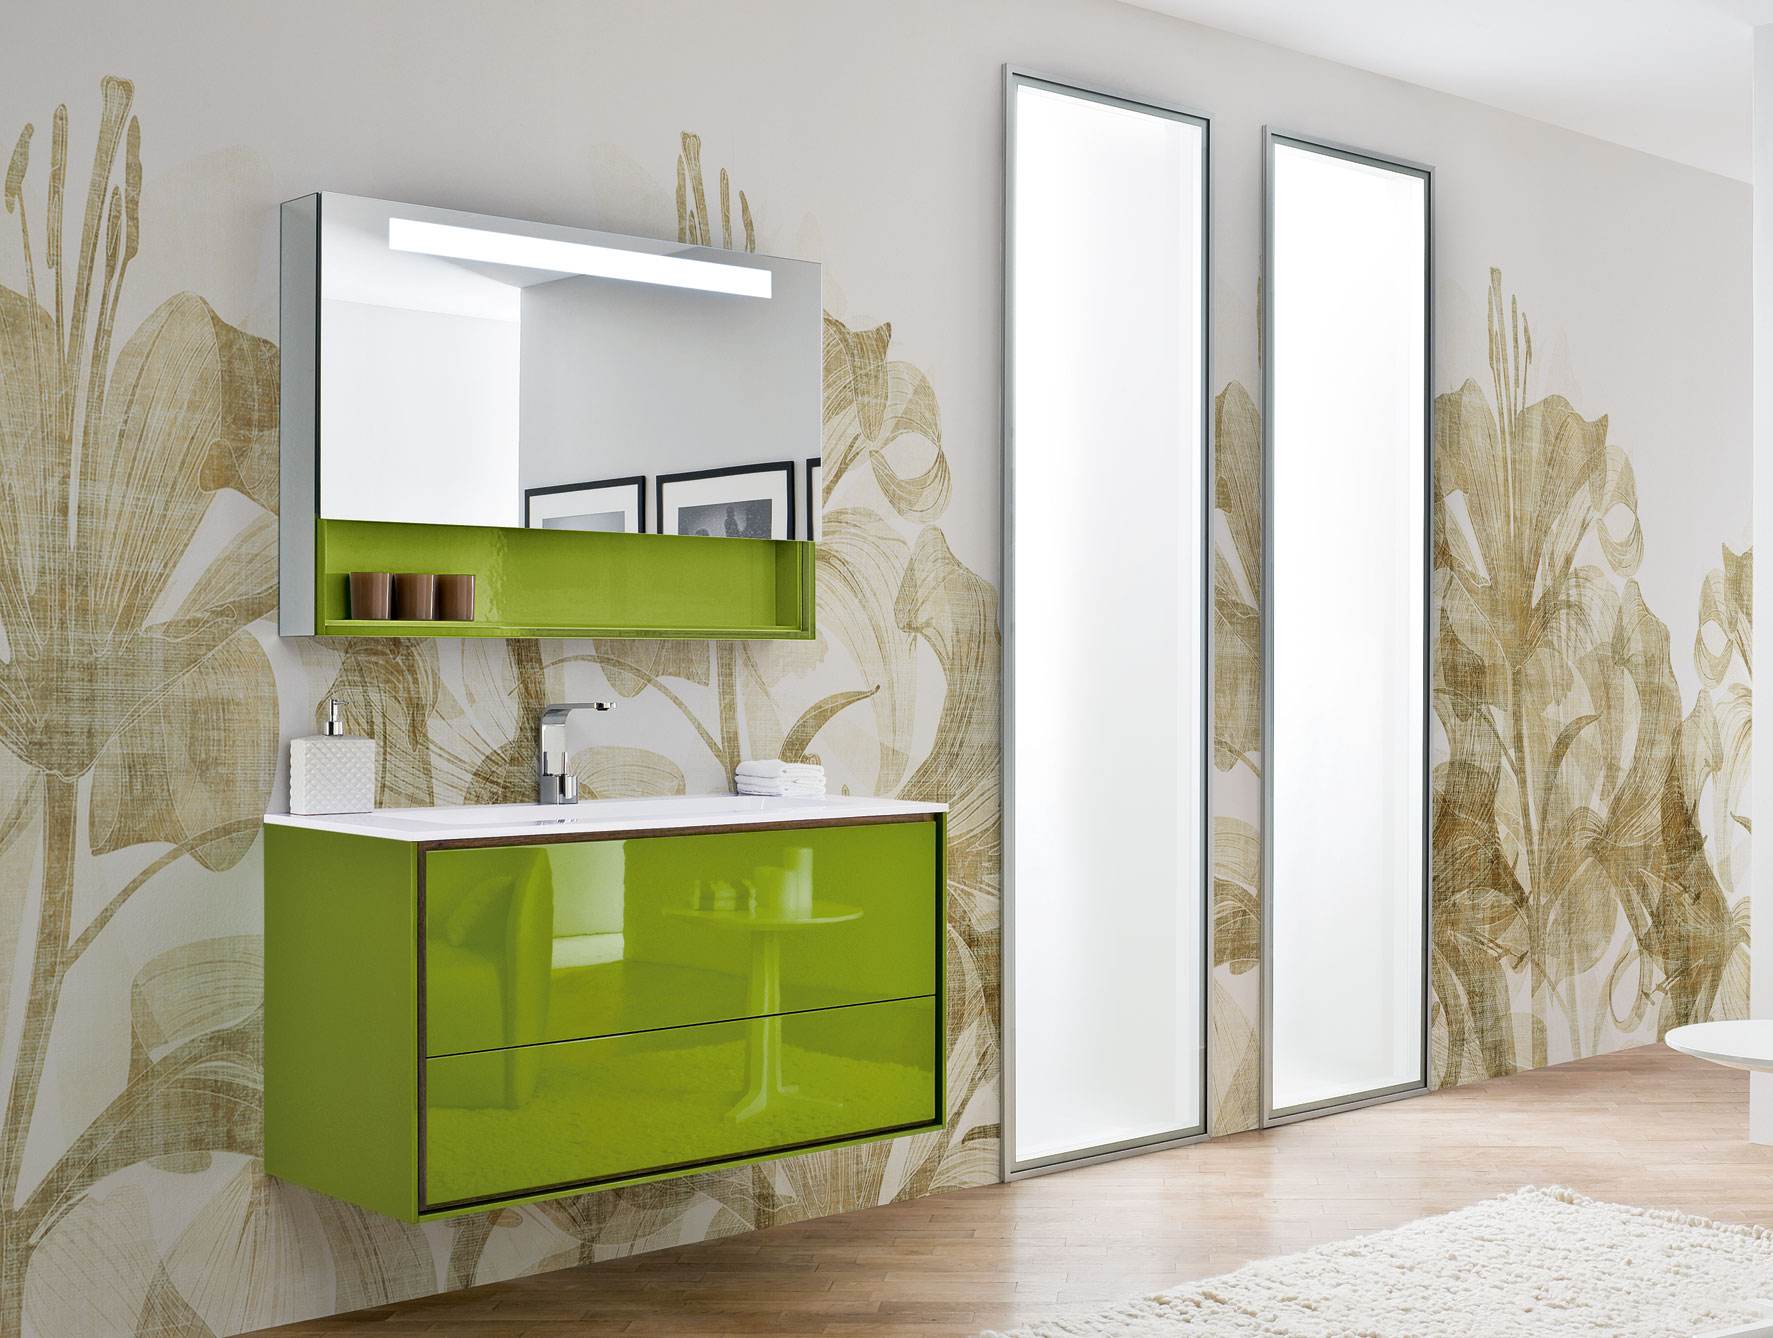 Images of Bathroom Vanities that Will Make You Fall in Love With ...